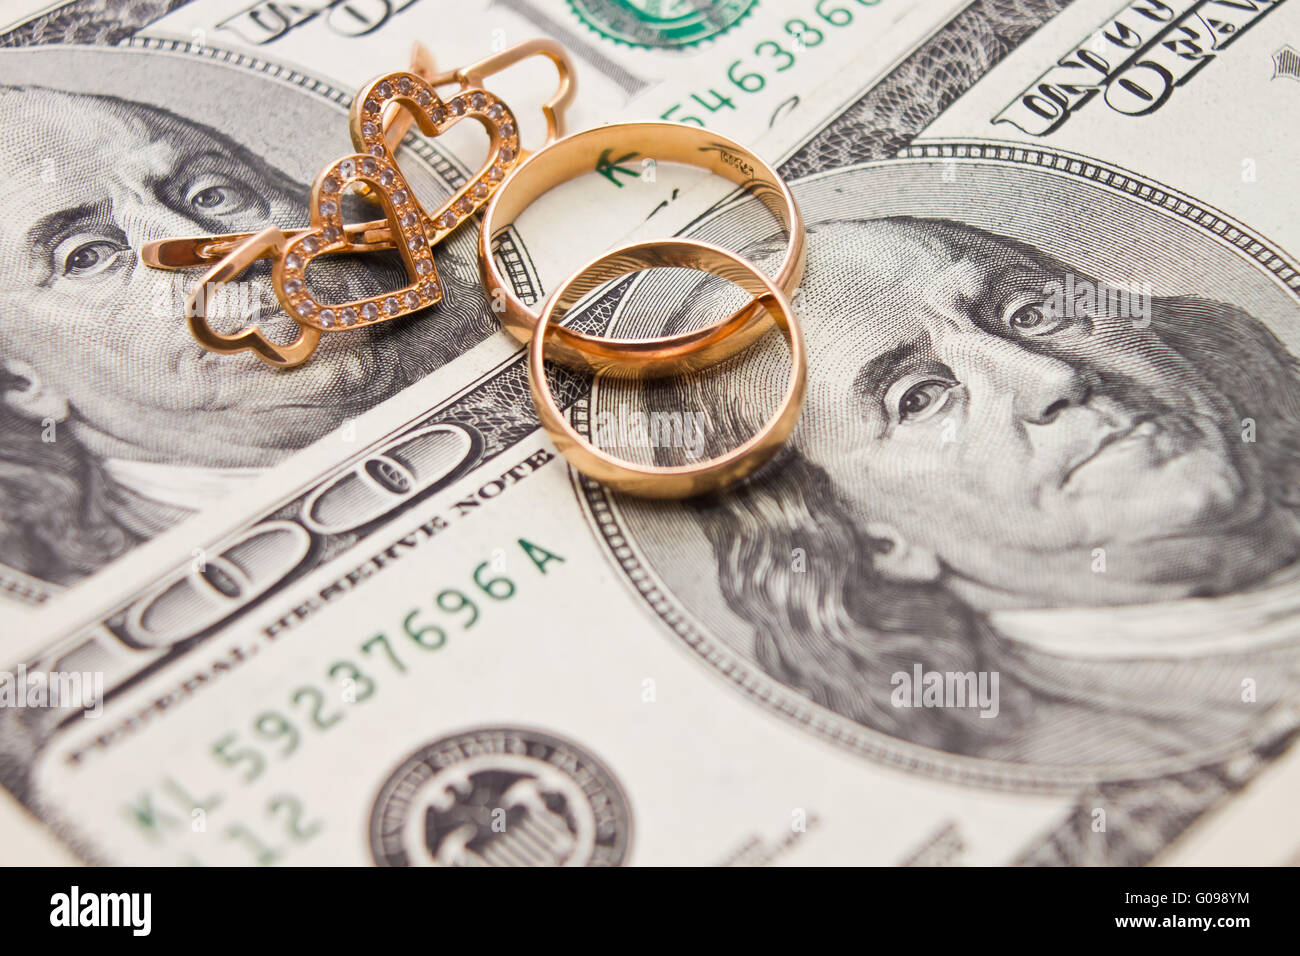 Wedding rings, gold chain and earrings in the form - Stock Image